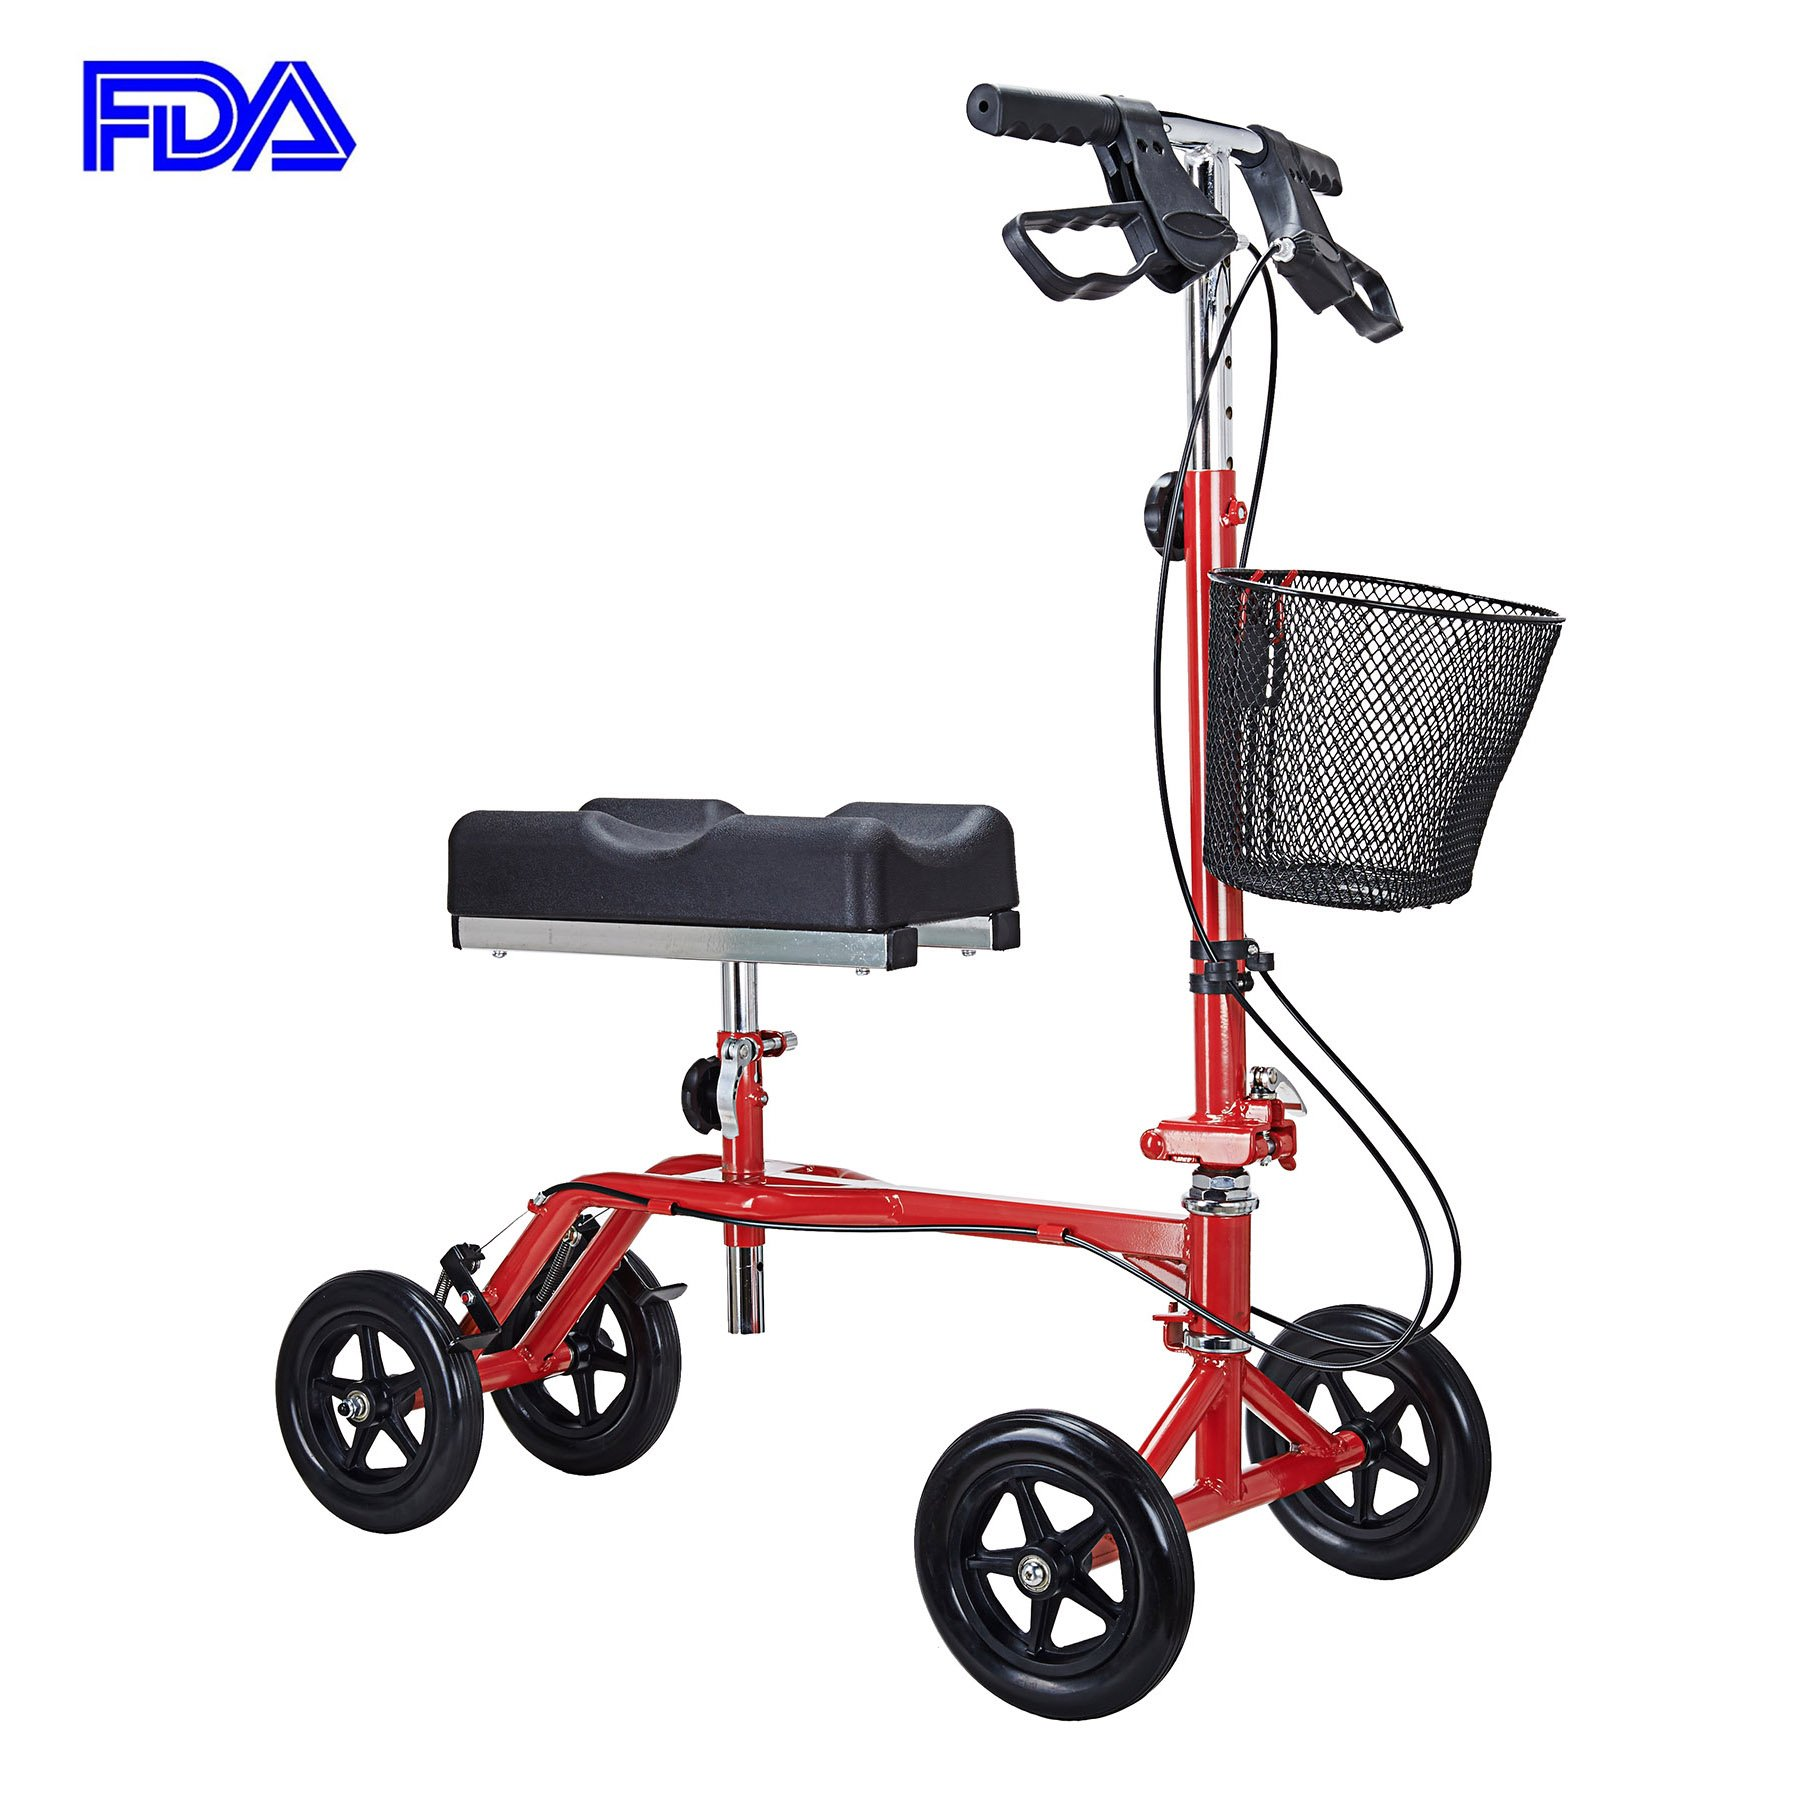 CO-Z Steerable Foldable Knee Walker Rover Scooter - Double Brakes Handle with Basket (Red)